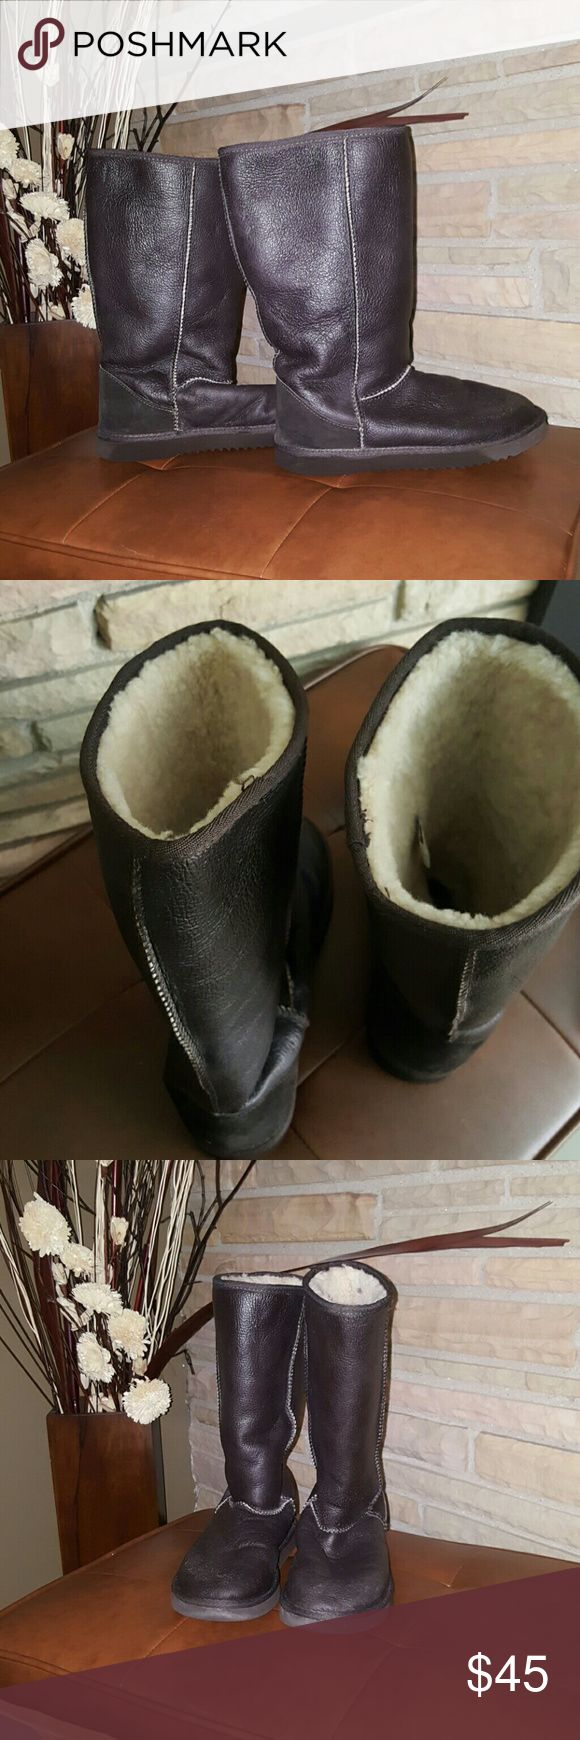 Tall Classic winter Sheepskin boots Not sure what brand these are but these do have real Sheepskin upper, Sheepskin insock & synthetic sole. Color is Dark Brown with Cream interior. These are in Excellent used condition. These are not uggs. Just under the category for exposure. UGG Shoes Winter & Rain Boots